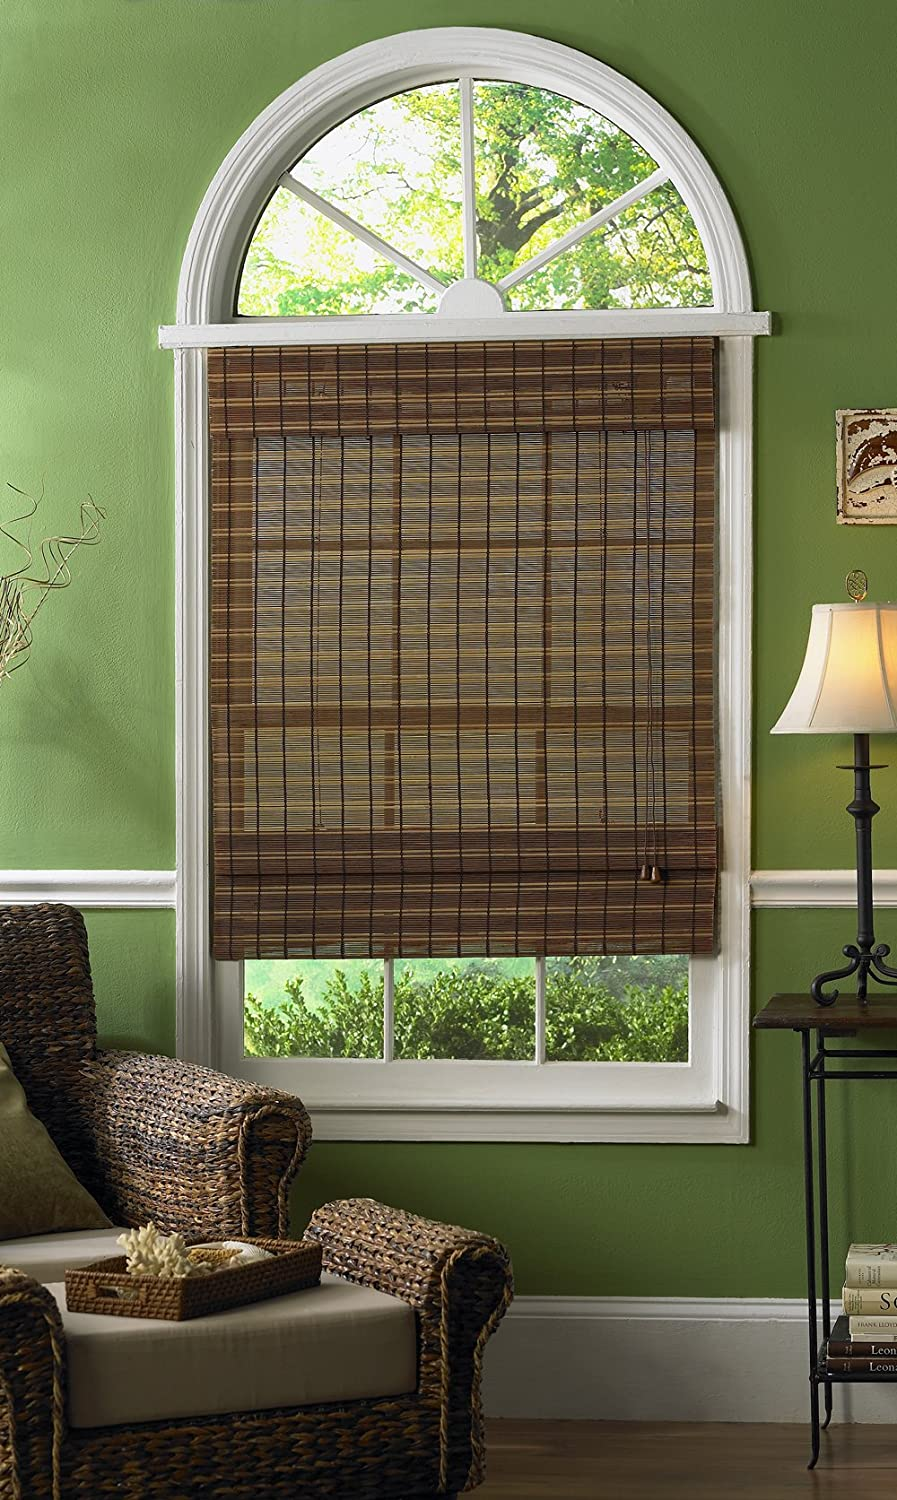 Radiance 0108339 Fruitwood Maya Roman Shade, Bamboo, 63-Inch Wide by 63-Inch Long Lewis Hyman Inc.